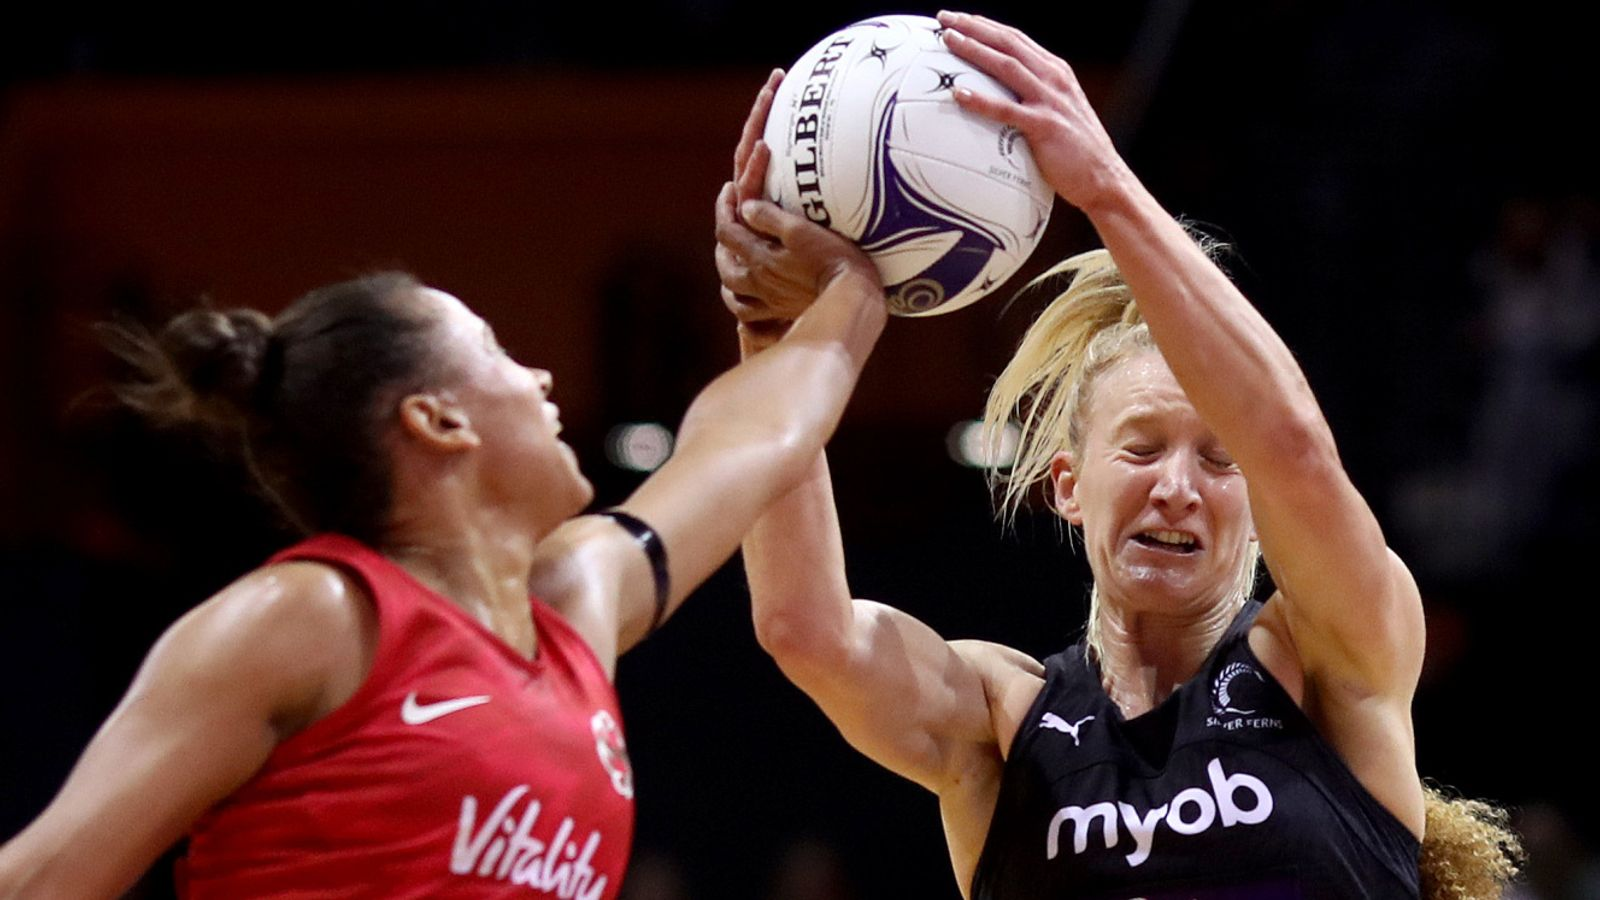 New Zealand 54-47 England: Silver Ferns rally to clinch series over impressive Roses